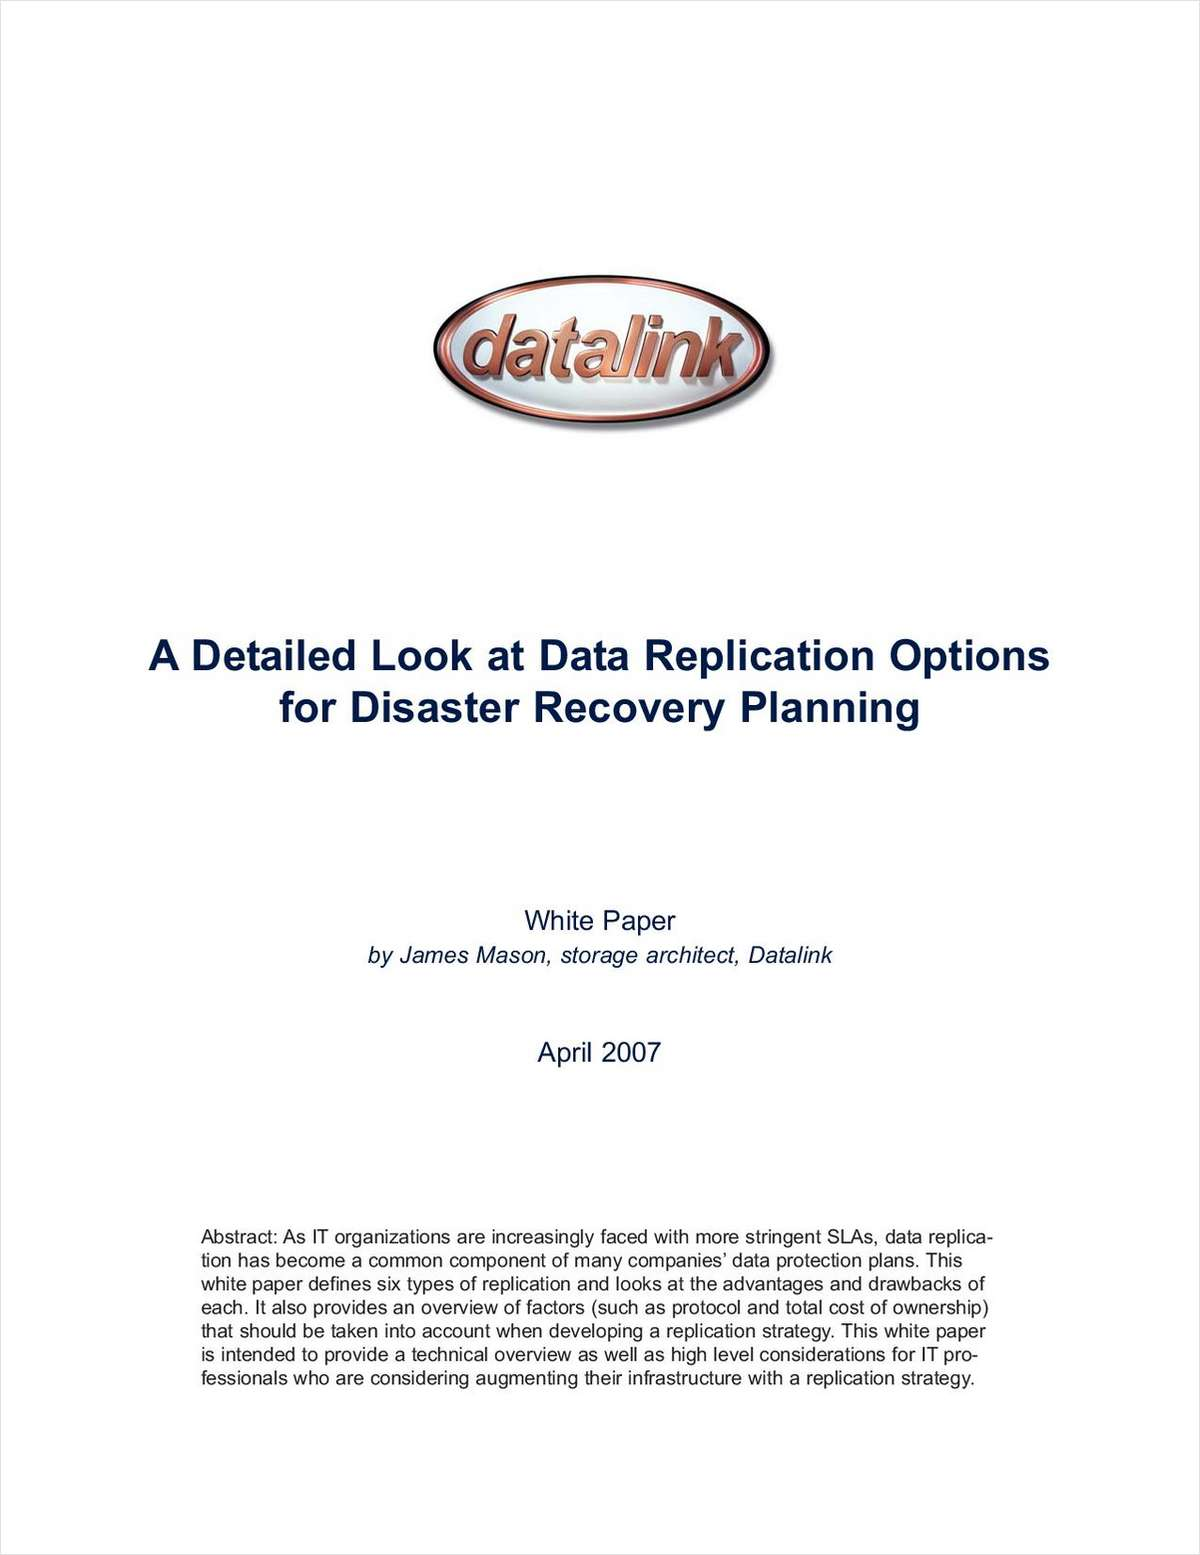 A Detailed Look at Data Replication Options for DR Planning